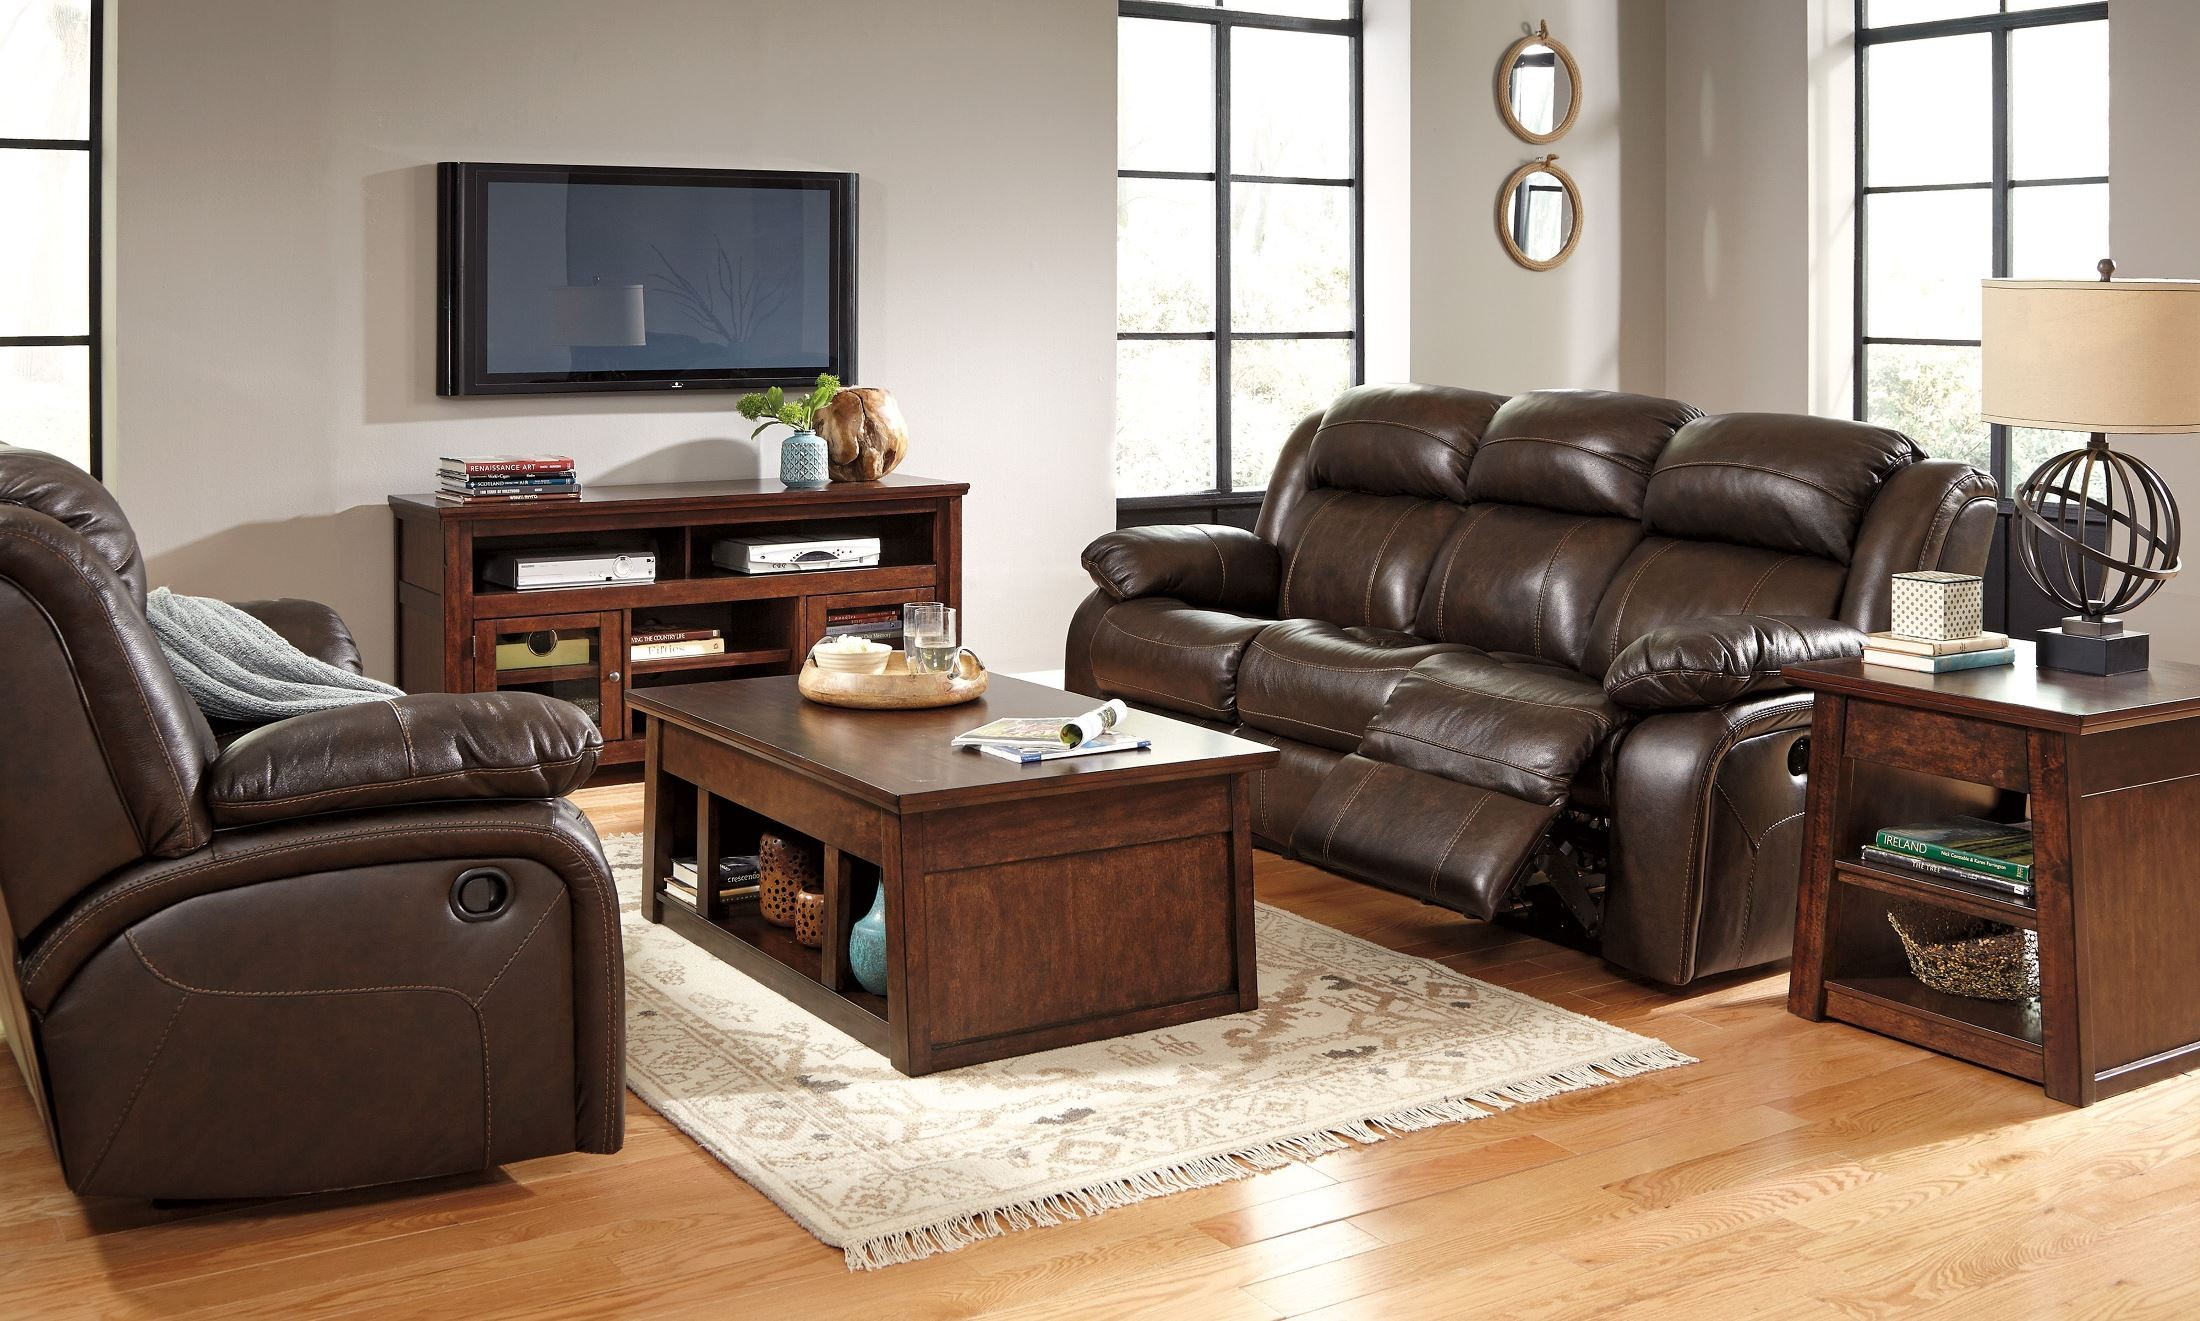 Branton antique power reclining living room set from for Furniture u street dc